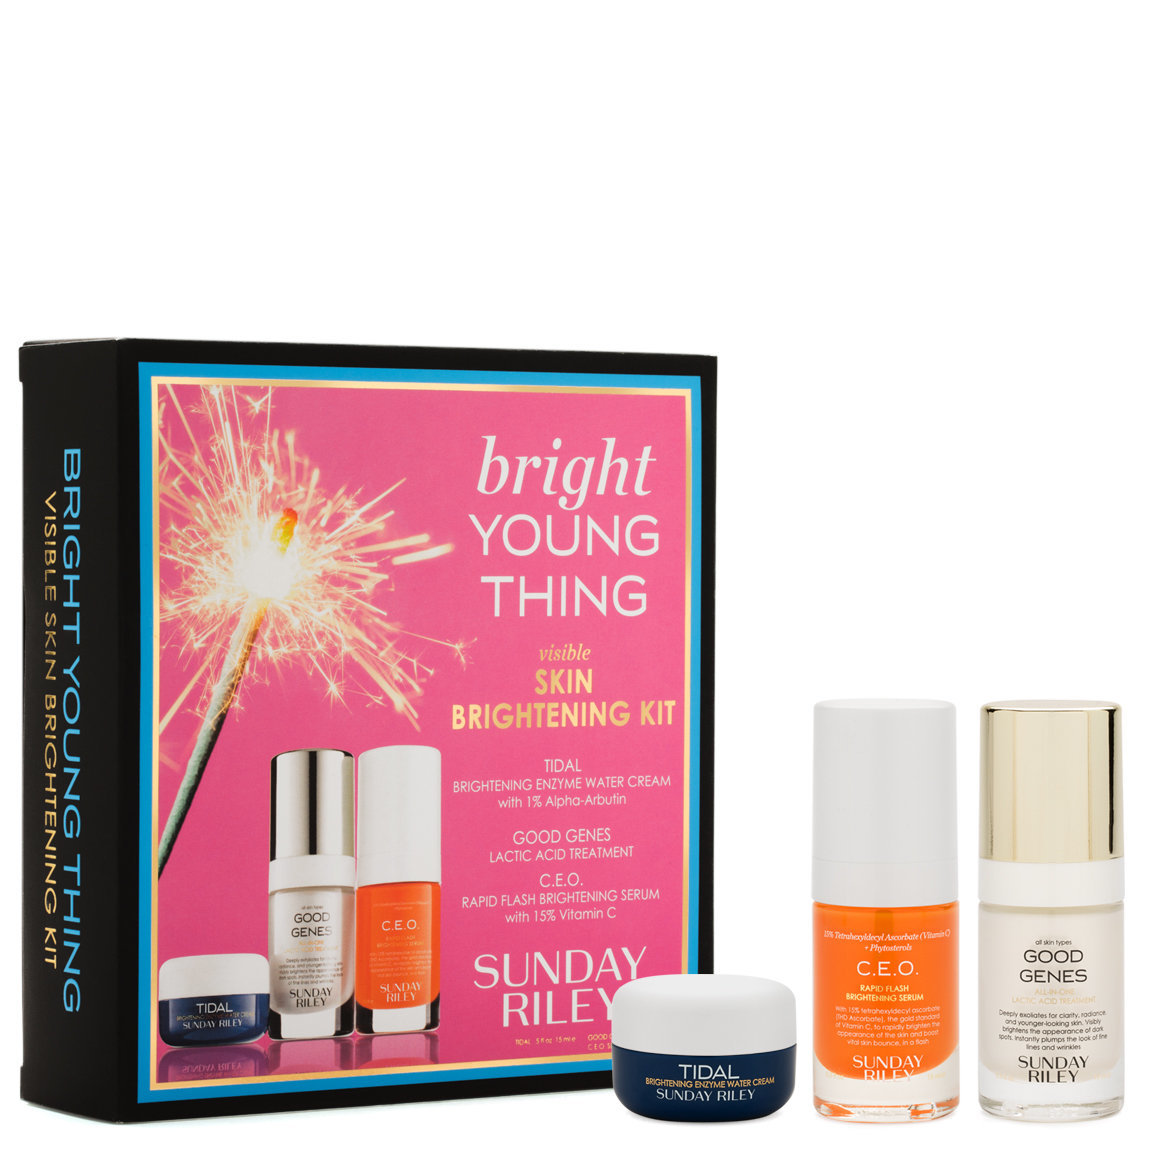 Sunday Riley Bright Young Thing Visible Skin Brightening Kit product smear.